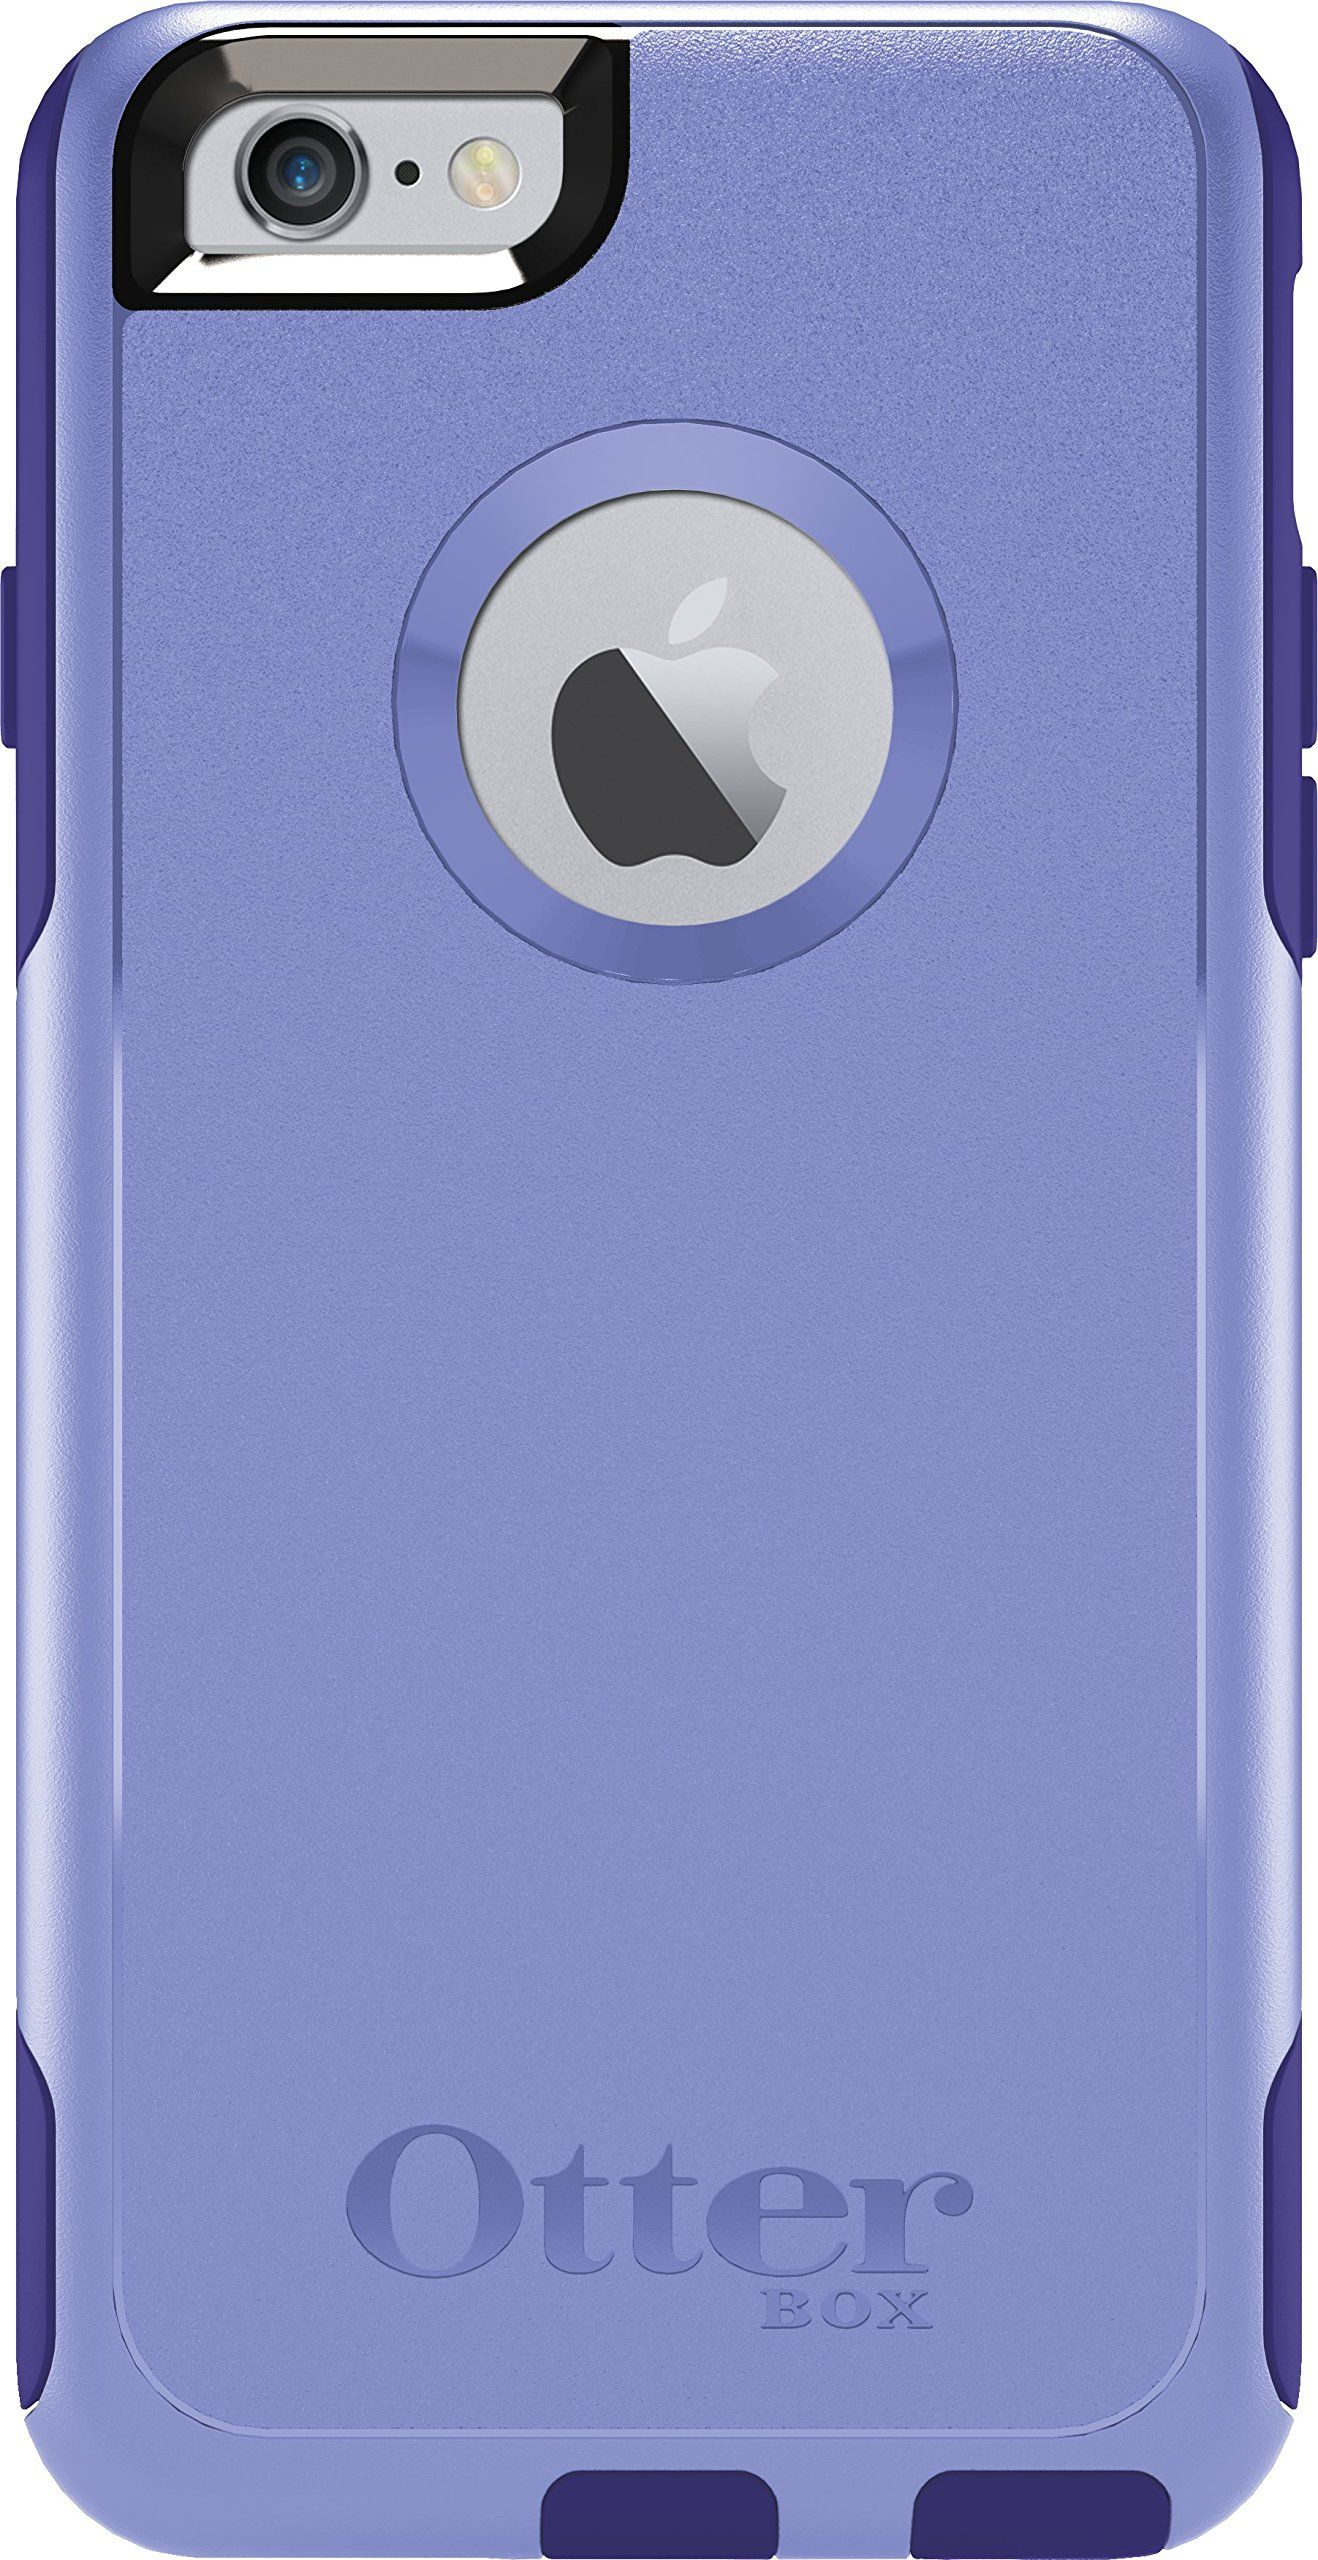 buy popular d0edf 4ae7e Amazon.com: OtterBox COMMUTER iPhone 6/6s Case - Frustration-Free ...